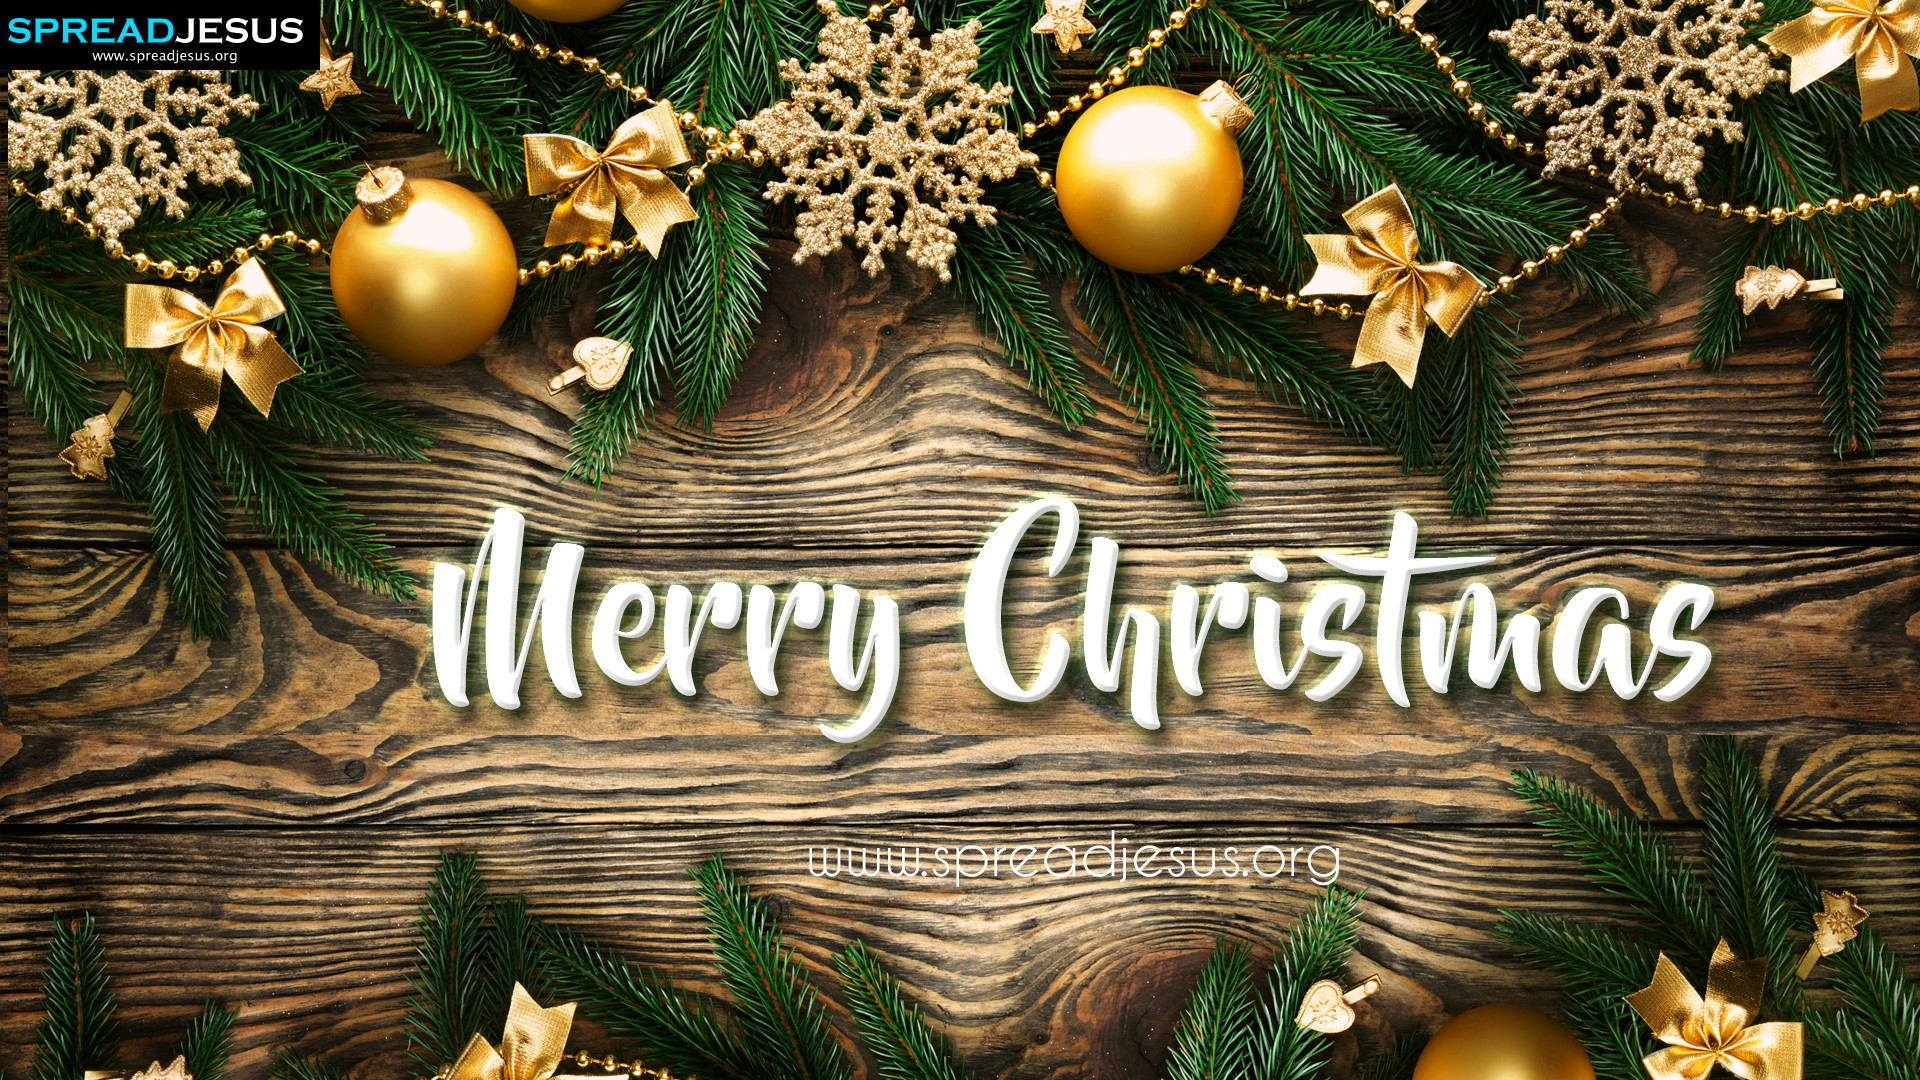 Merry christmas HD-Wallpapers Download, Happy Christmas Wallpaper Images, Christmas Greetings!